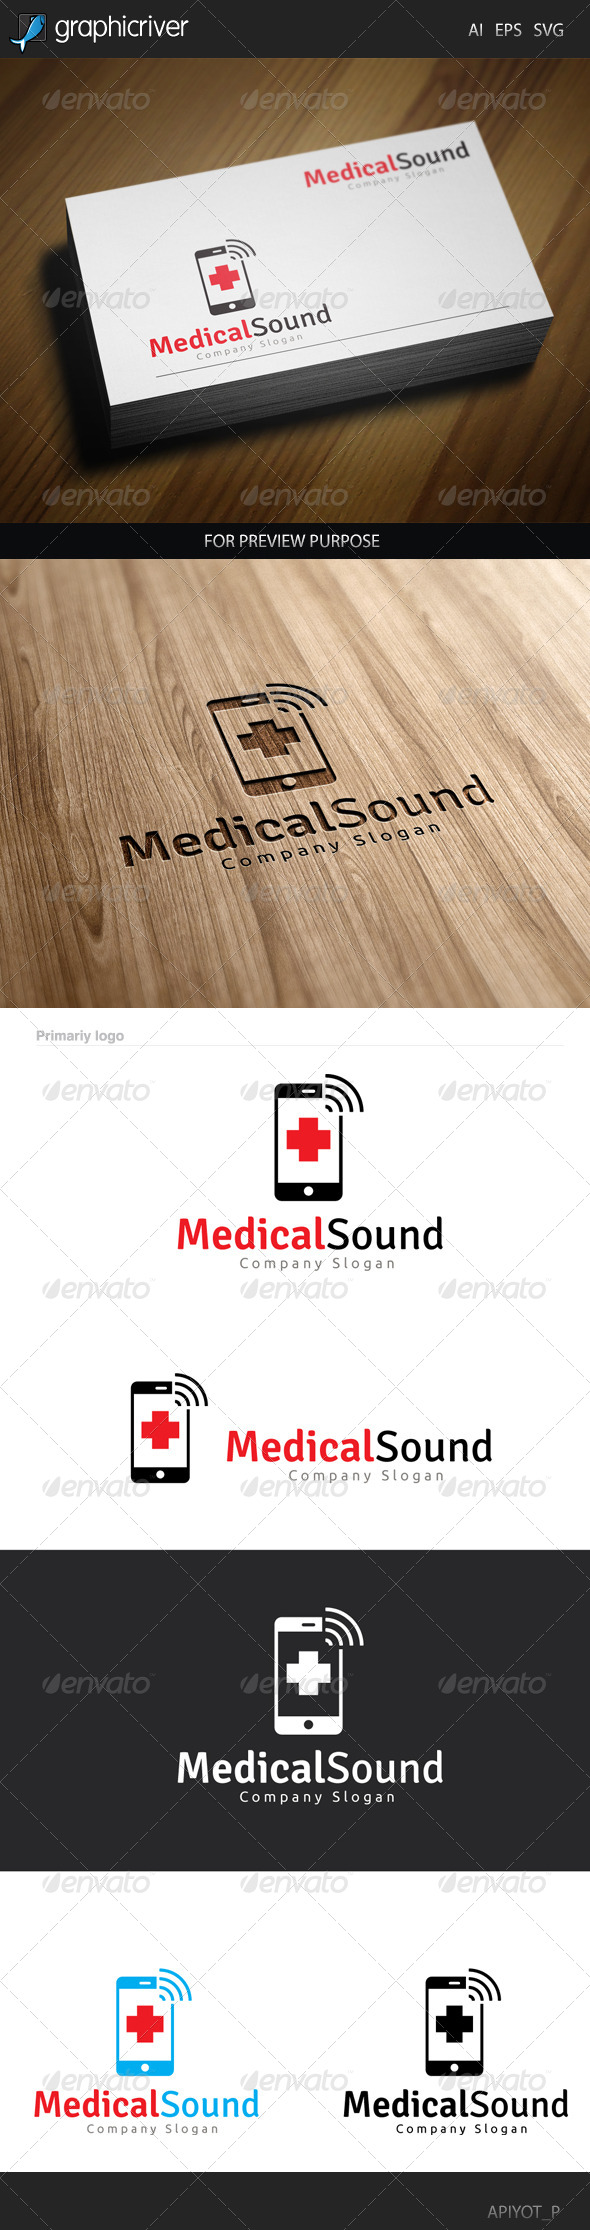 Medical Sound Logo